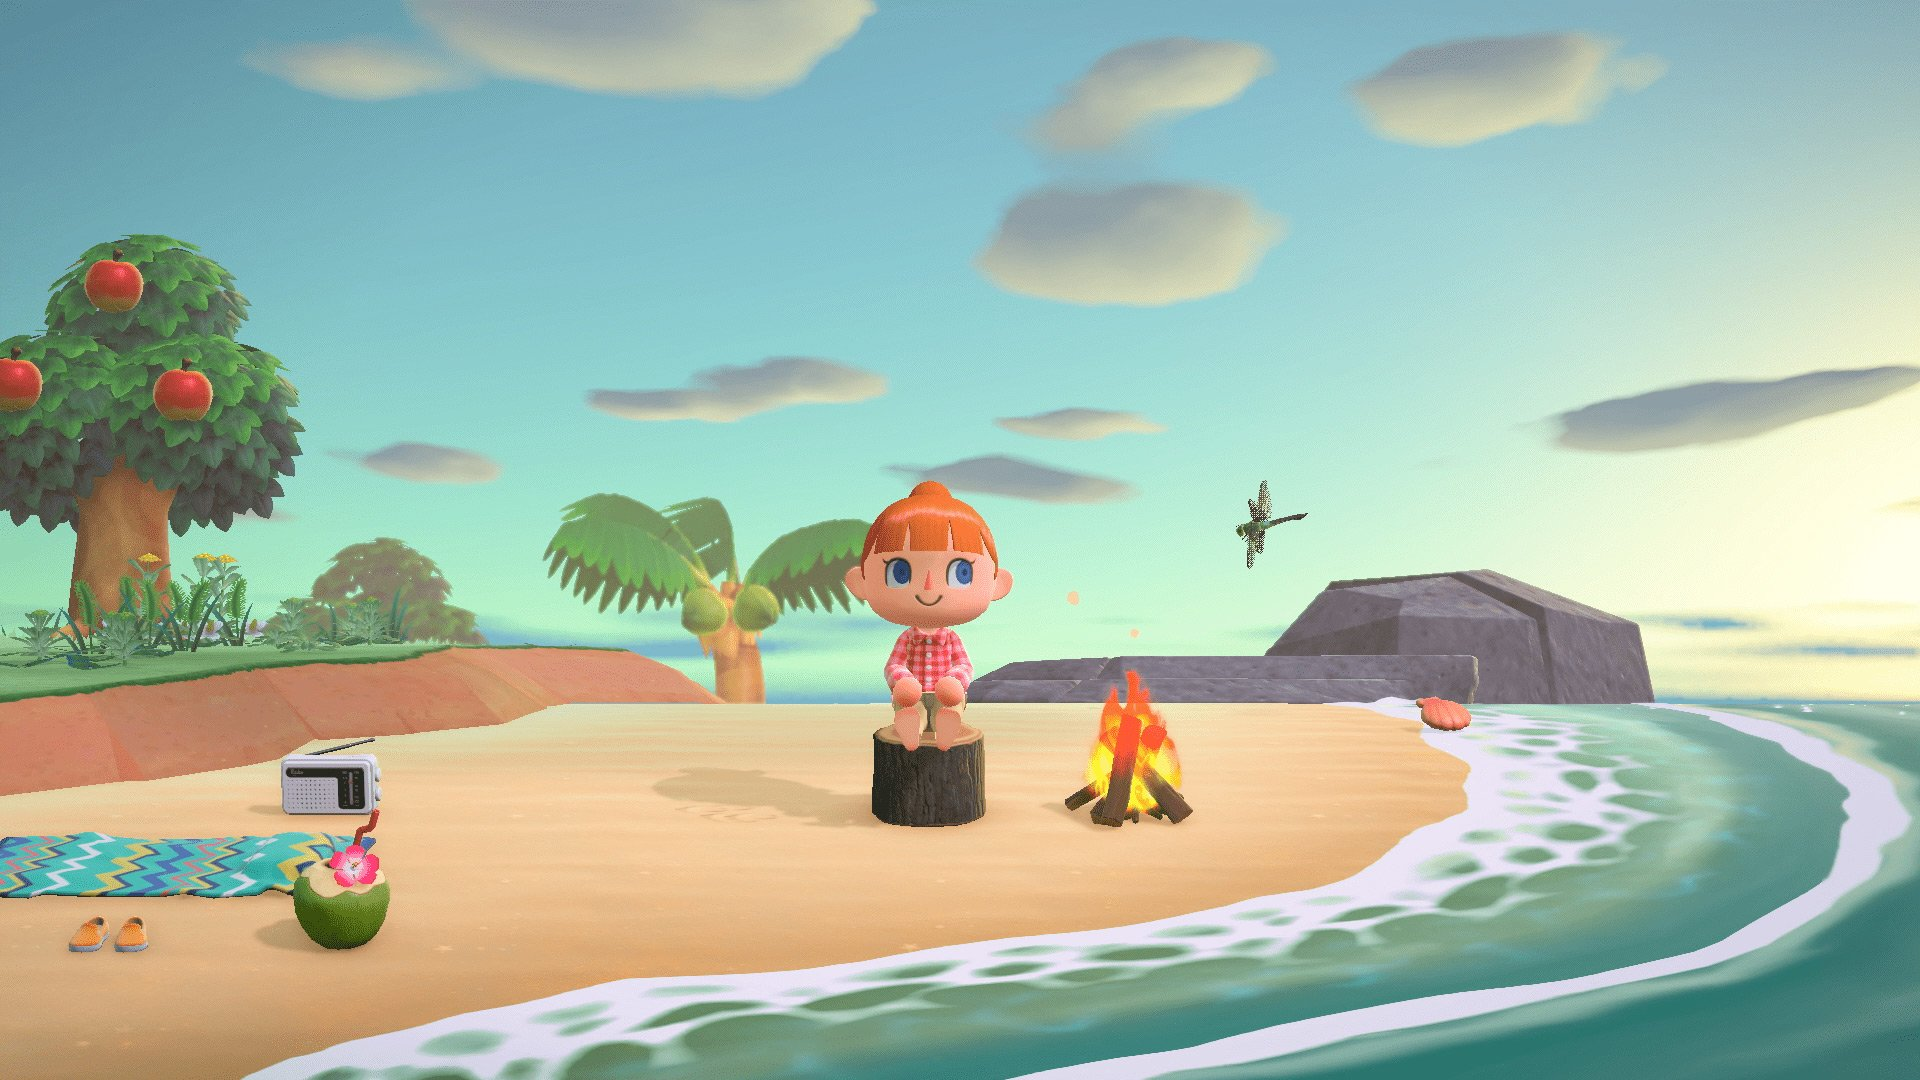 In An Amazing Addition To The Game, Animal Crossing: New Horizons Allows Players To Use Wheel Chairs